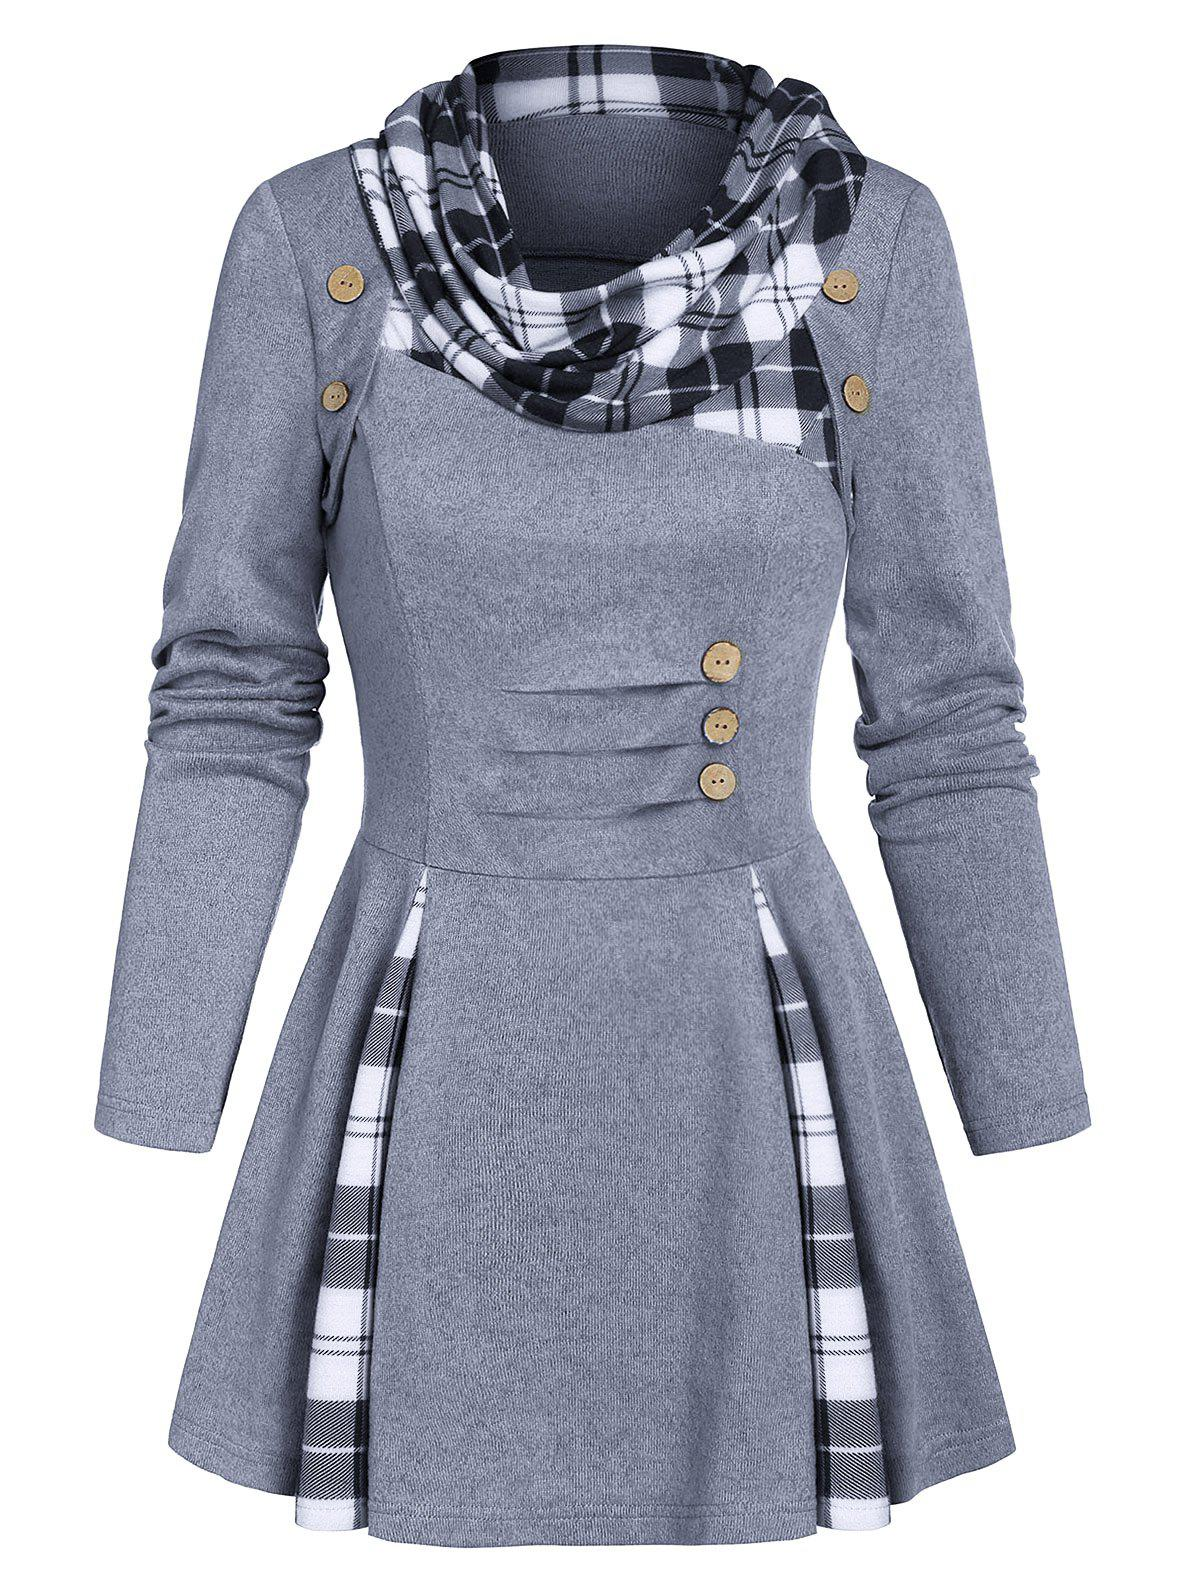 Plaid Print Ruched Mock Button Flare Sweater - LIGHT SLATE GRAY M